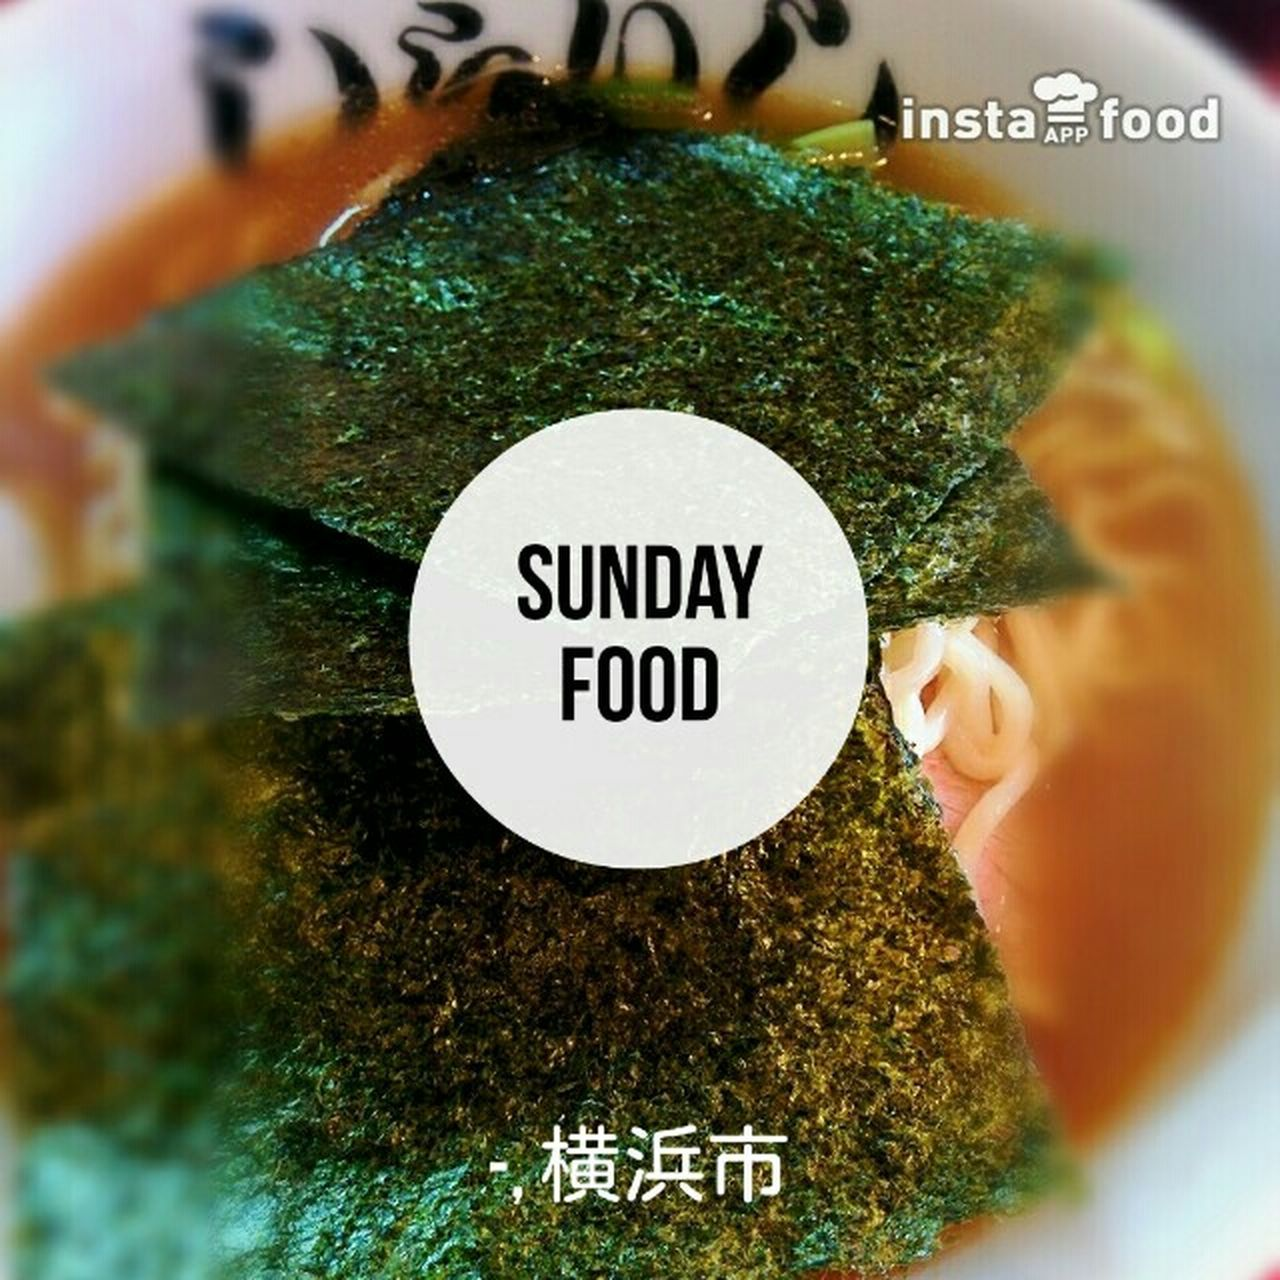 Ramen Hanging Out Check This Out Hello World Enjoying Life Tasty Dishes Noodles